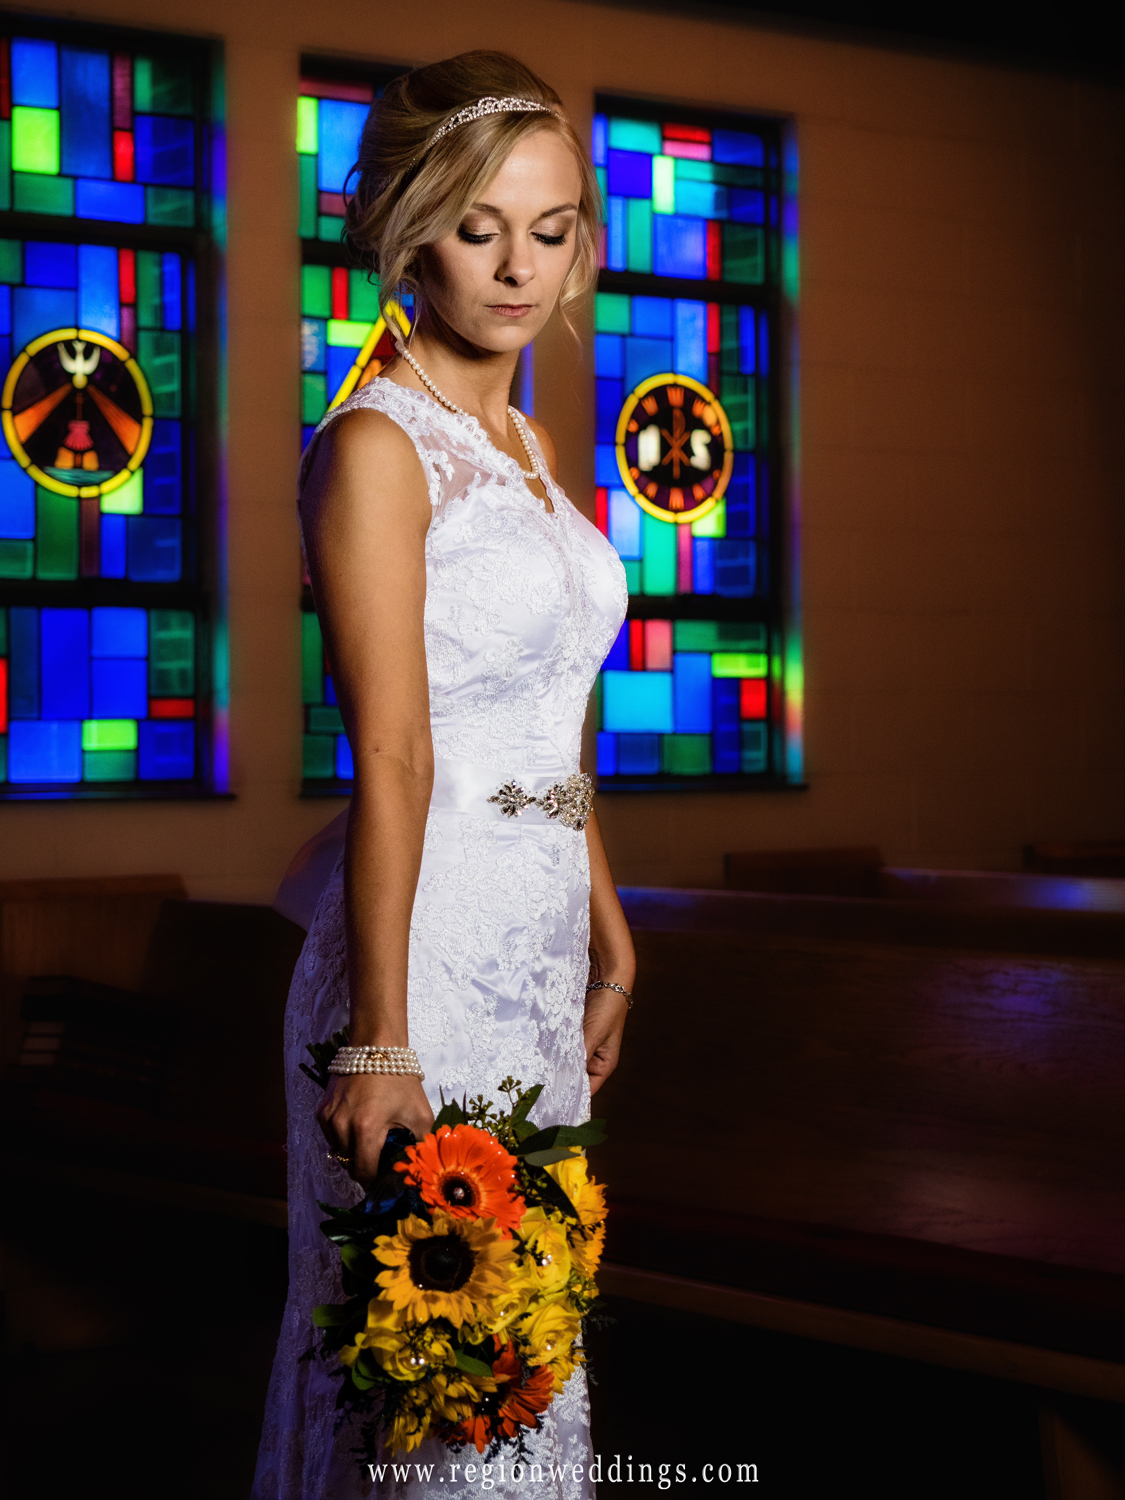 The bride looks down at her bouquet with stained glass windows behind her.